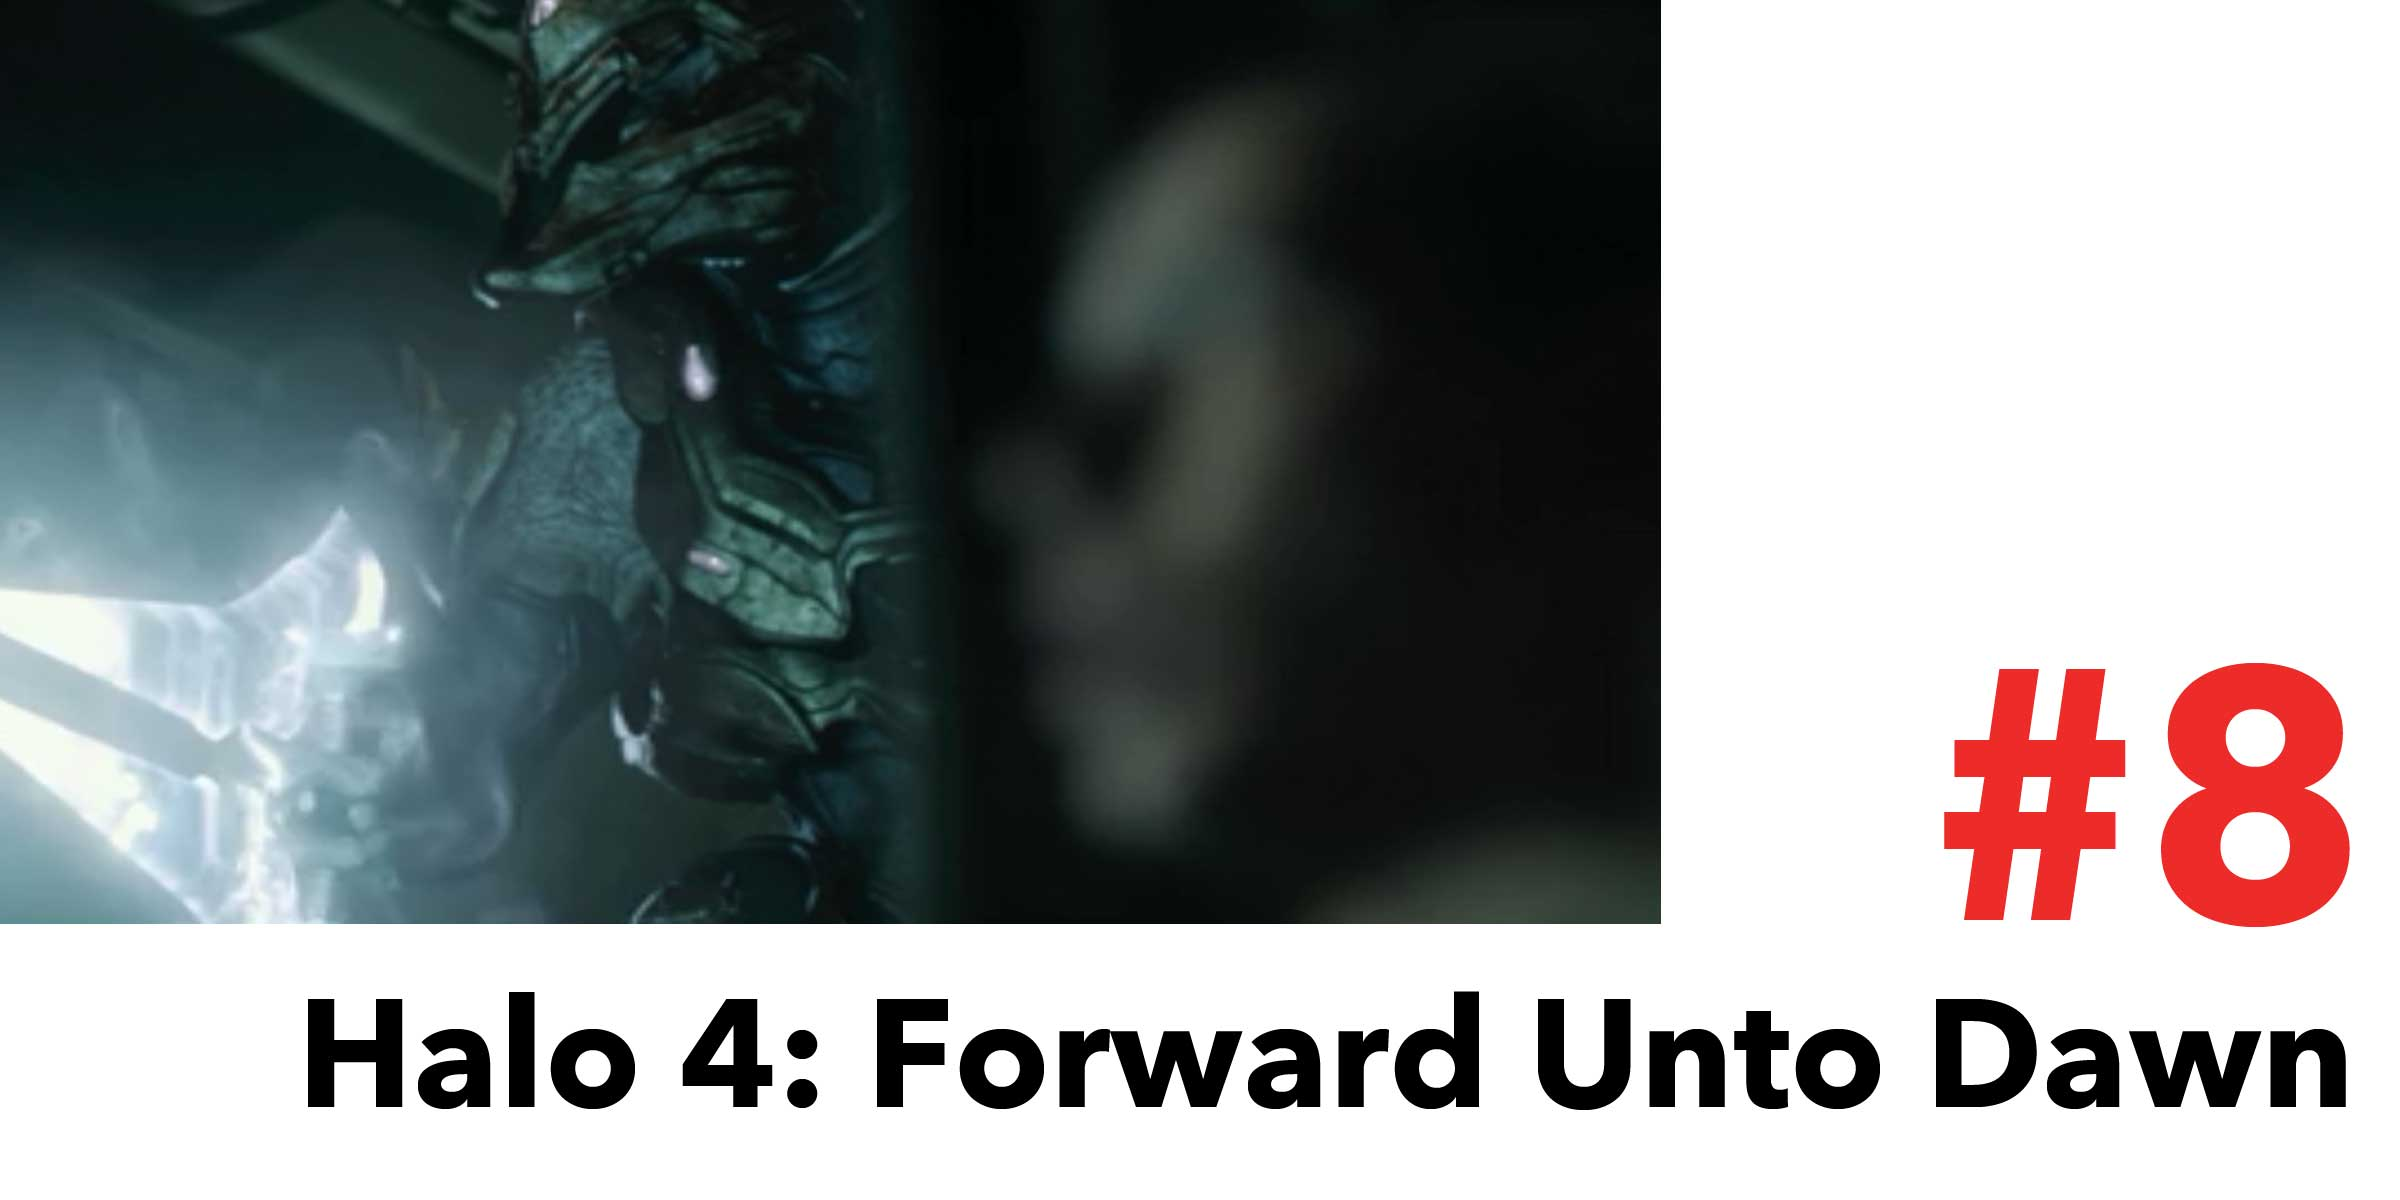 Halo 4: Forward Unto Dawn is #8 in the Top 10 Post Apocalyptic Movies on Netflix. Pictured, an alien Elite, aka Sangheili, stalks a group of humans with his energy sword.